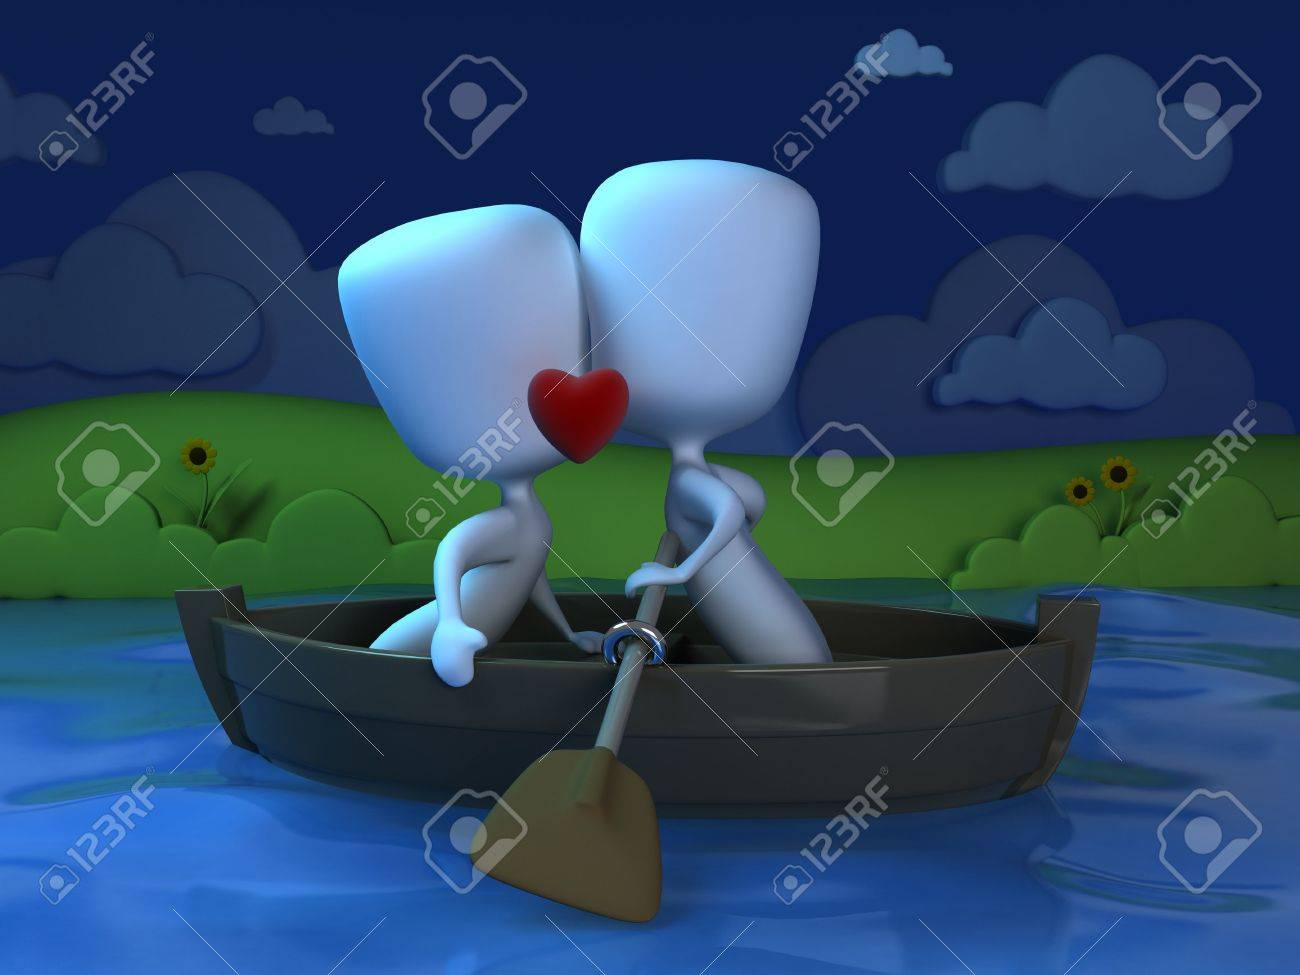 3D Illustration of a Couple Kissing on a Boat Stock Photo - 8756736